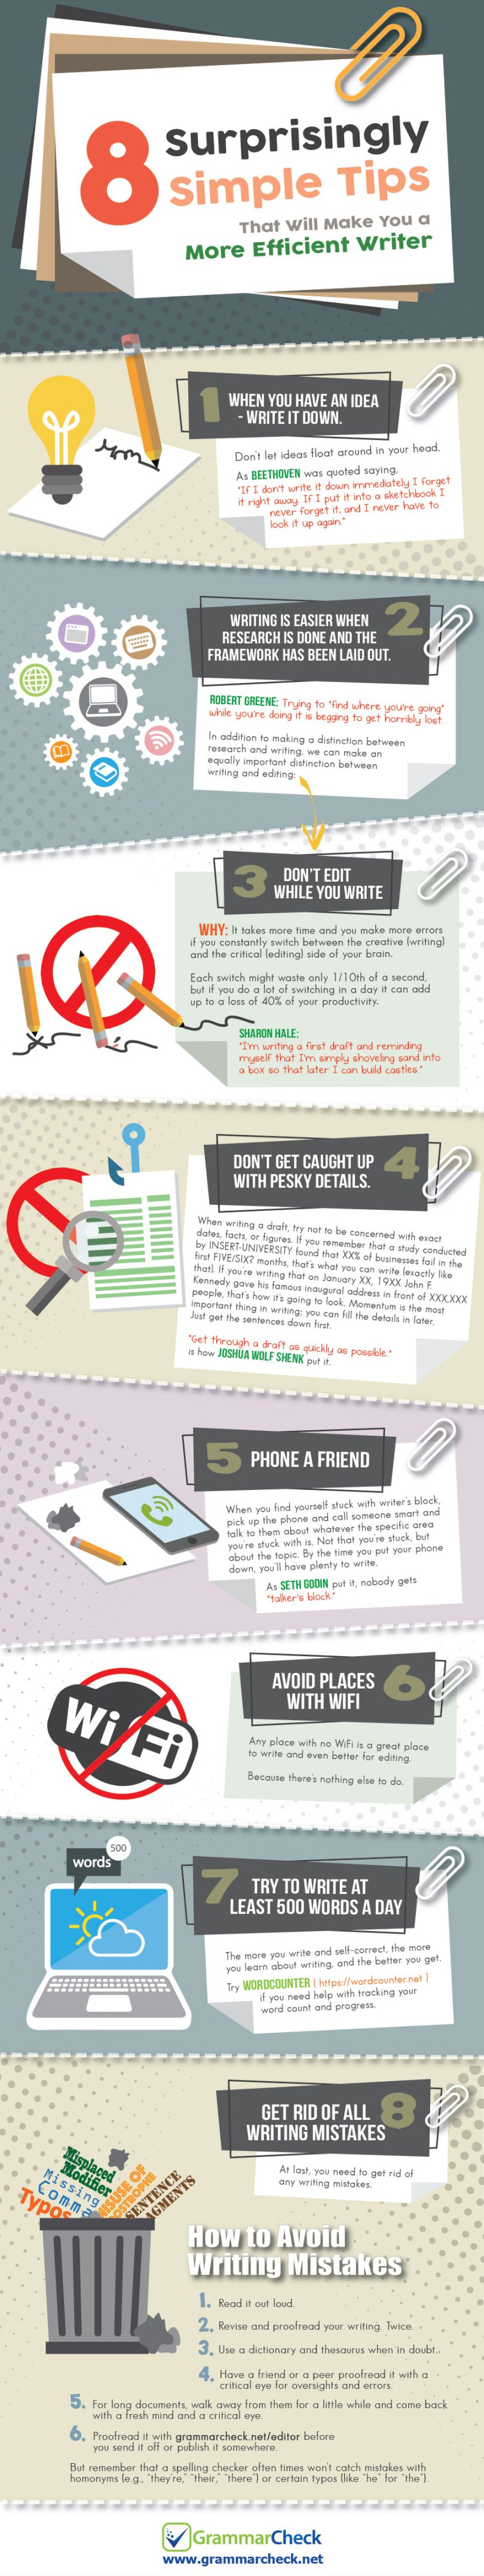 8-surprisingly-simple-writing-tips-infographic